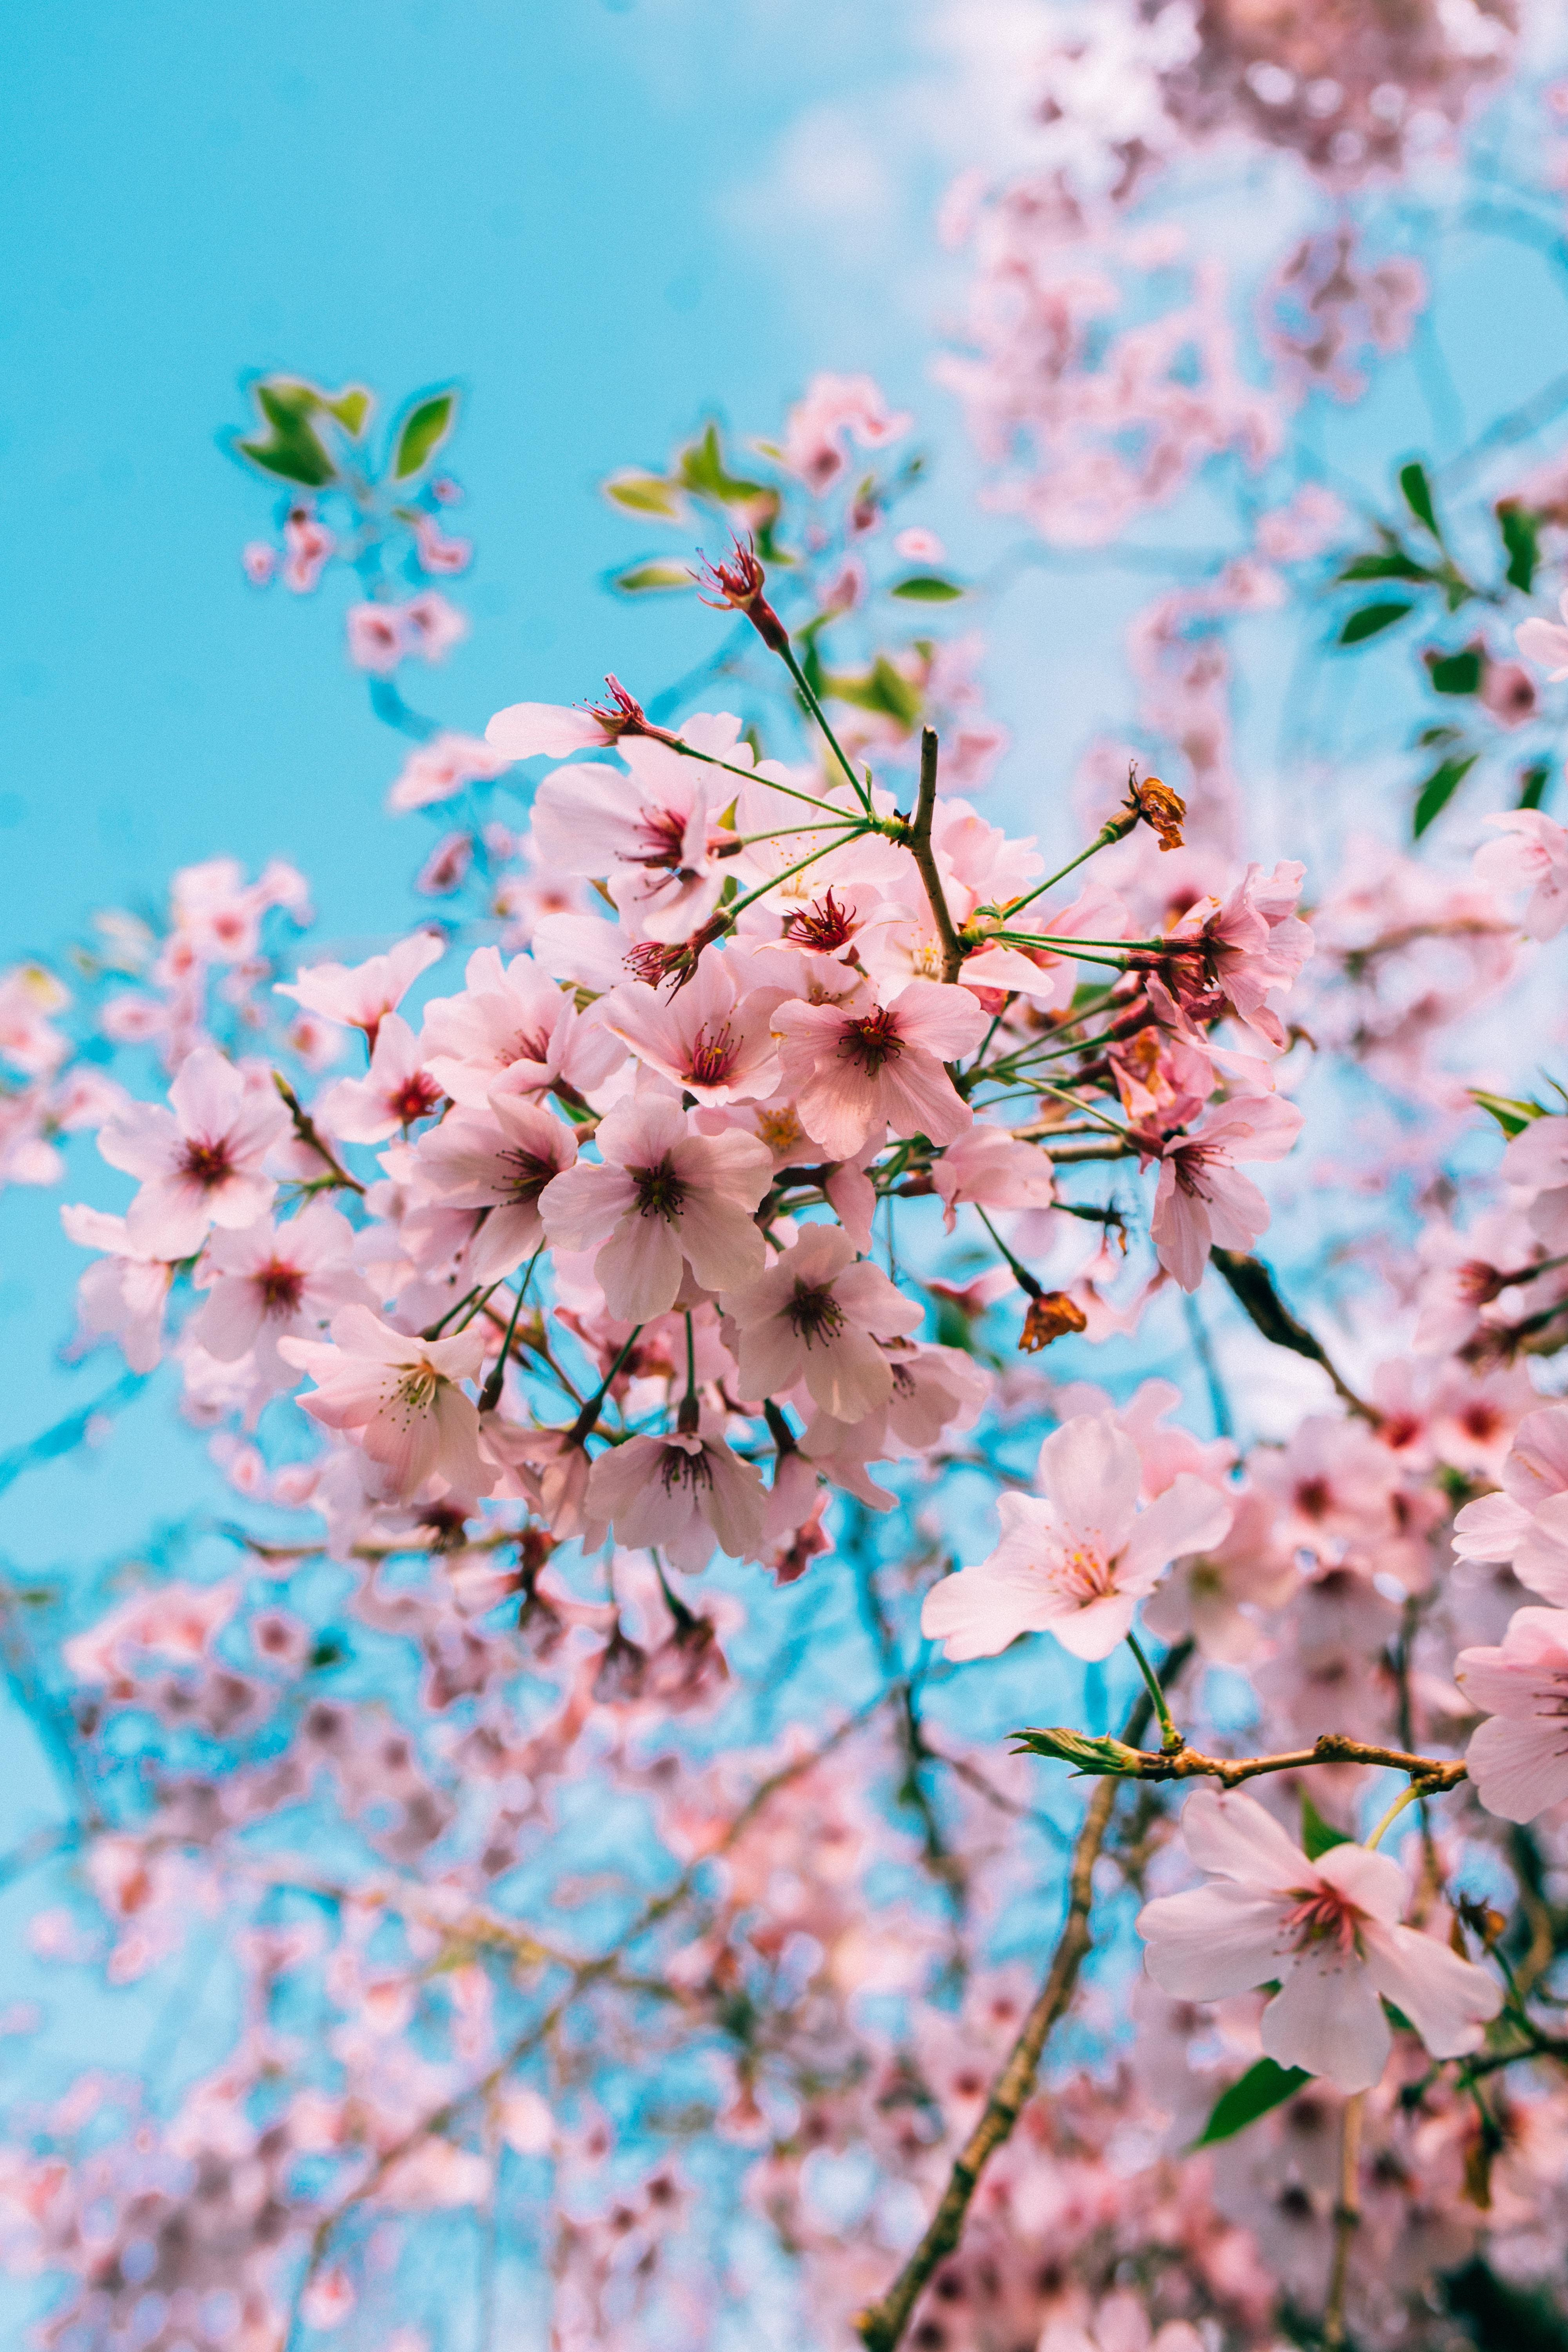 Cherry Blossom Anime Aesthetic Wallpapers - Wallpaper Cave